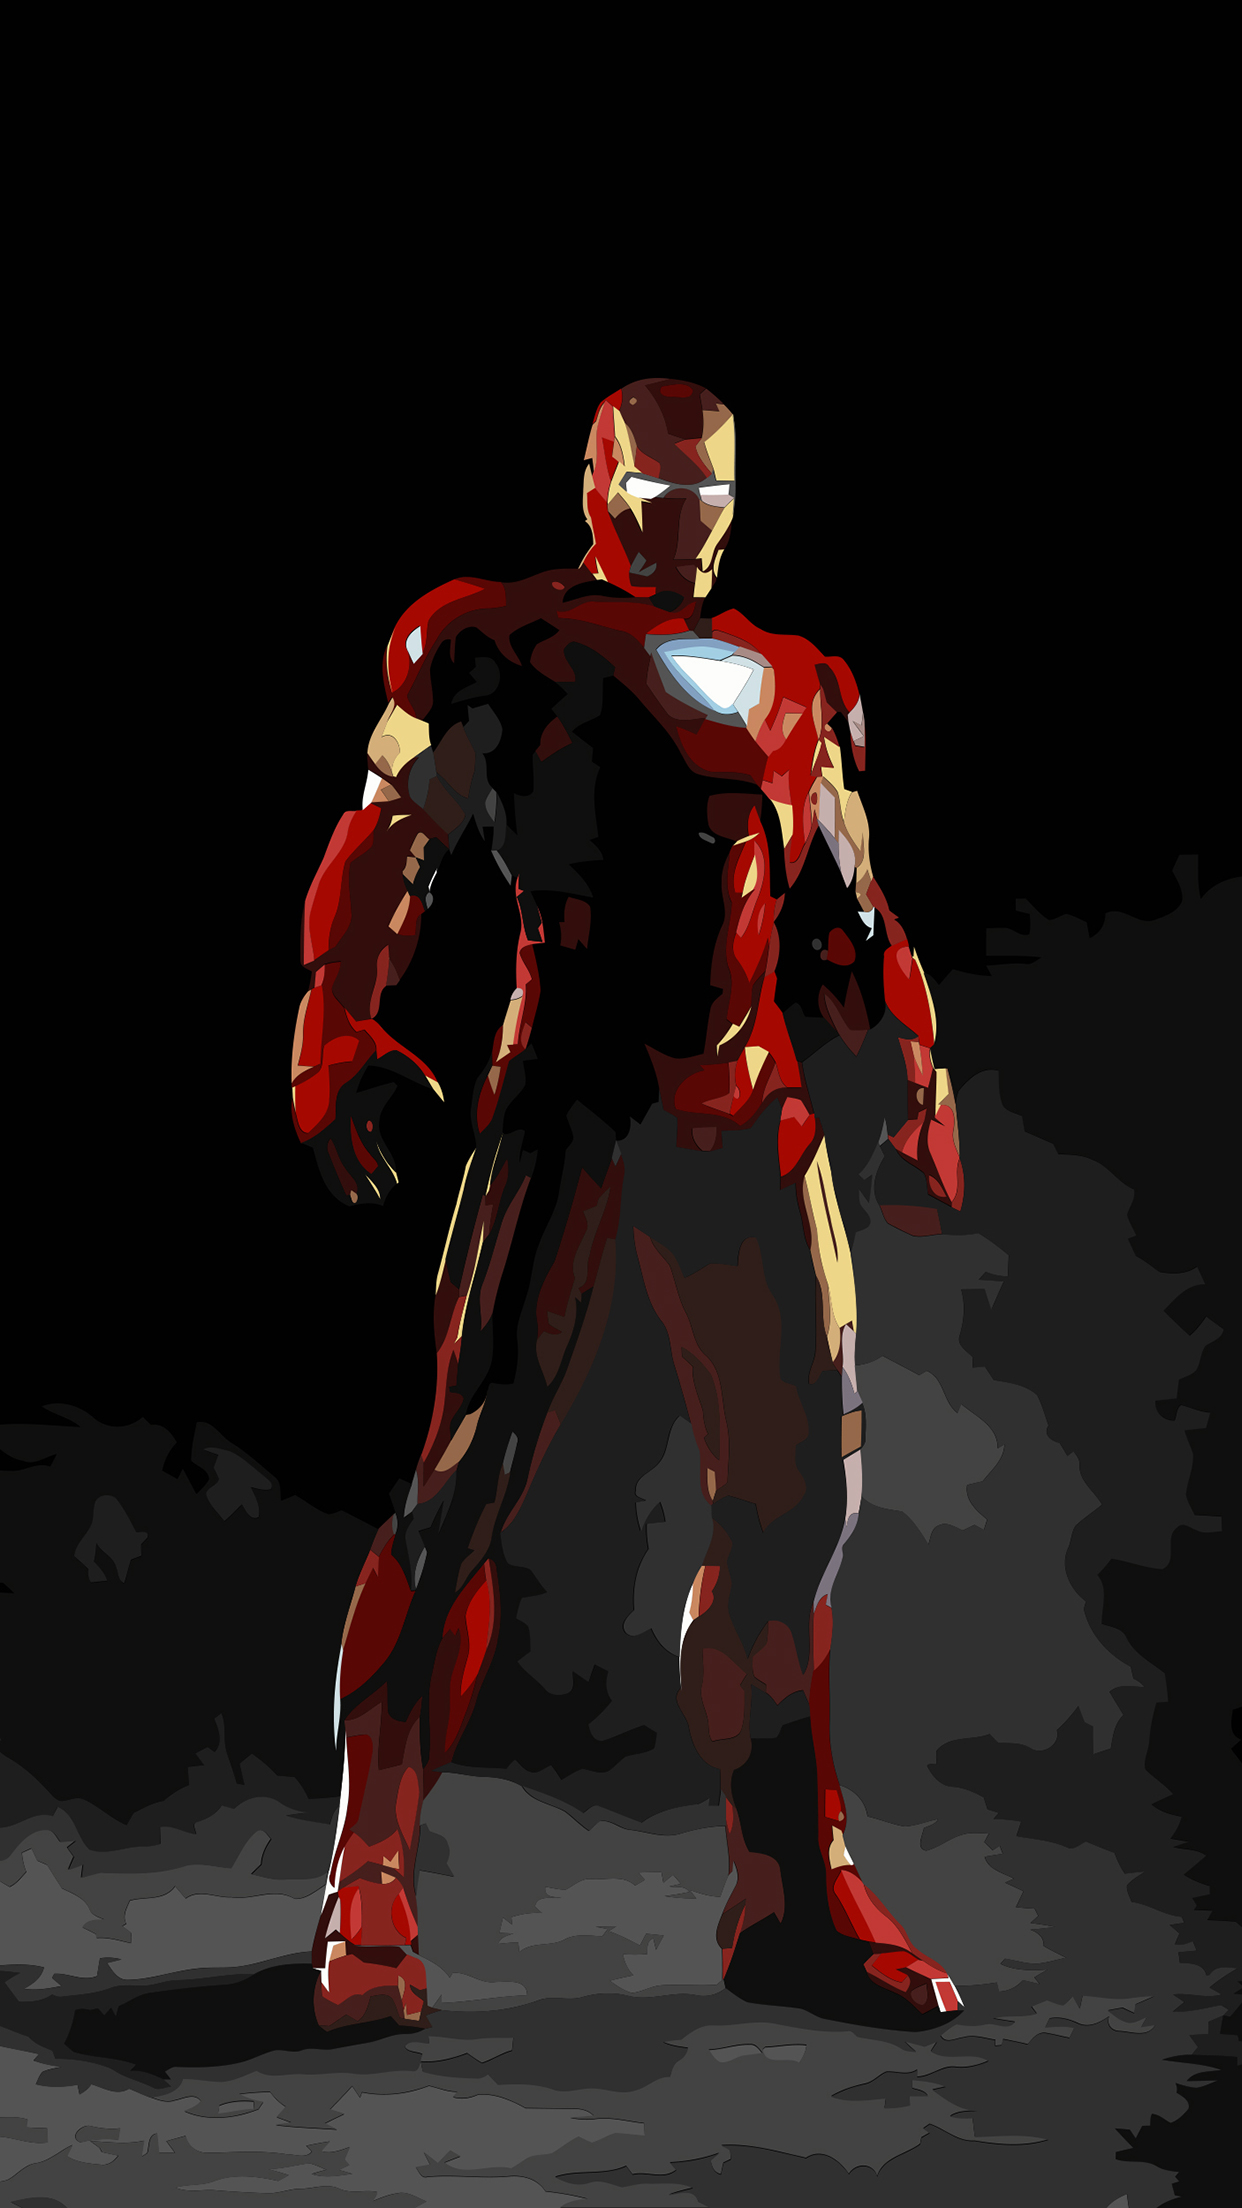 Iron Man Draw iPhone 3Wallpapers Parallax Les 3 Wallpapers iPhone du jour (19/05/2015)